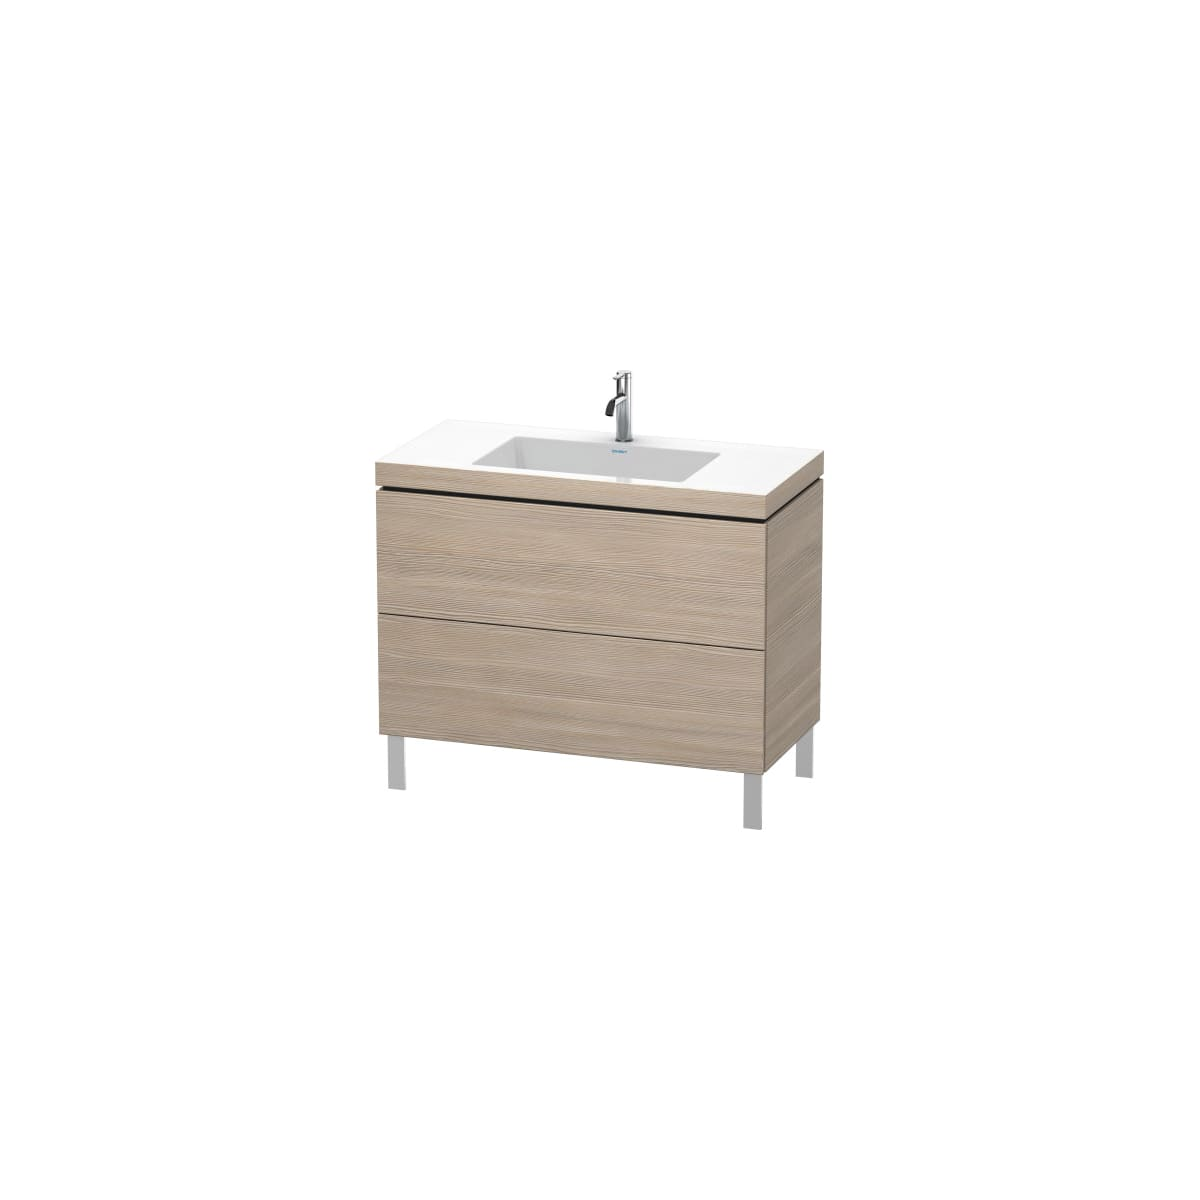 "Duravit L-Cube 39-3/8"" Free Standing Single Basin Vanity Set with Wood Cabinet and Vanity Top"